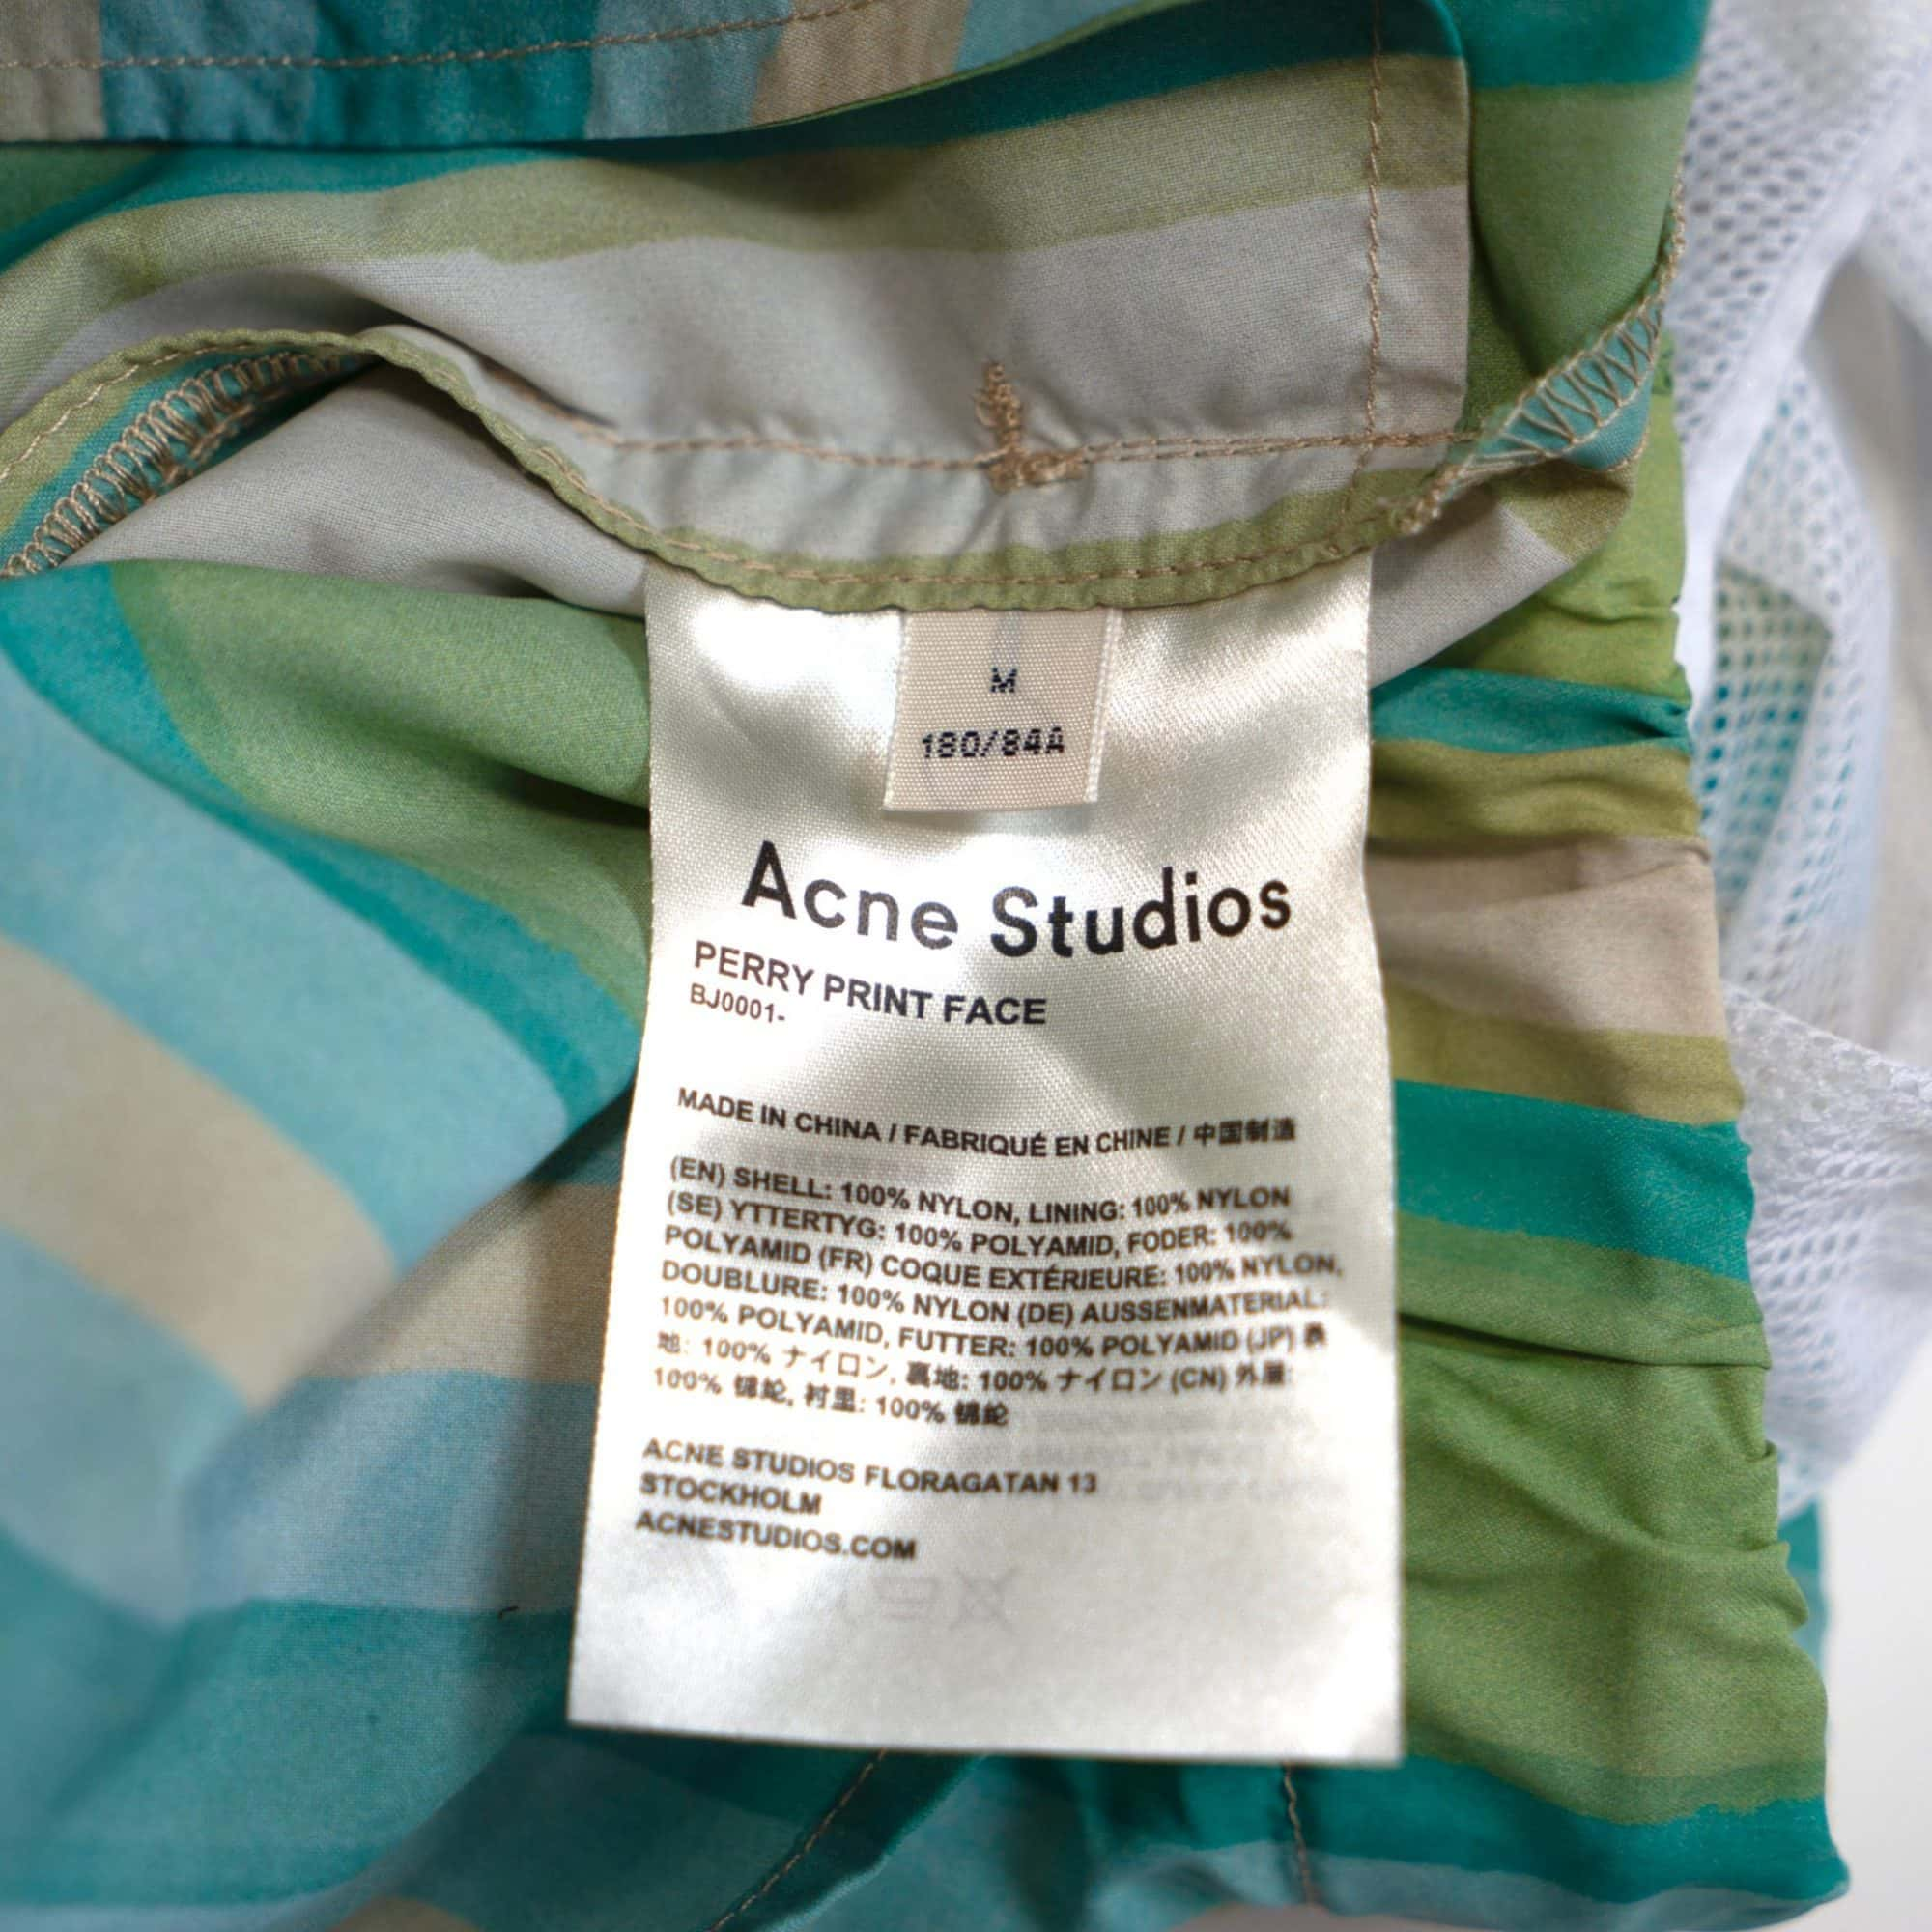 gebraucht kaufen Acne Studios Perry Face Badehose